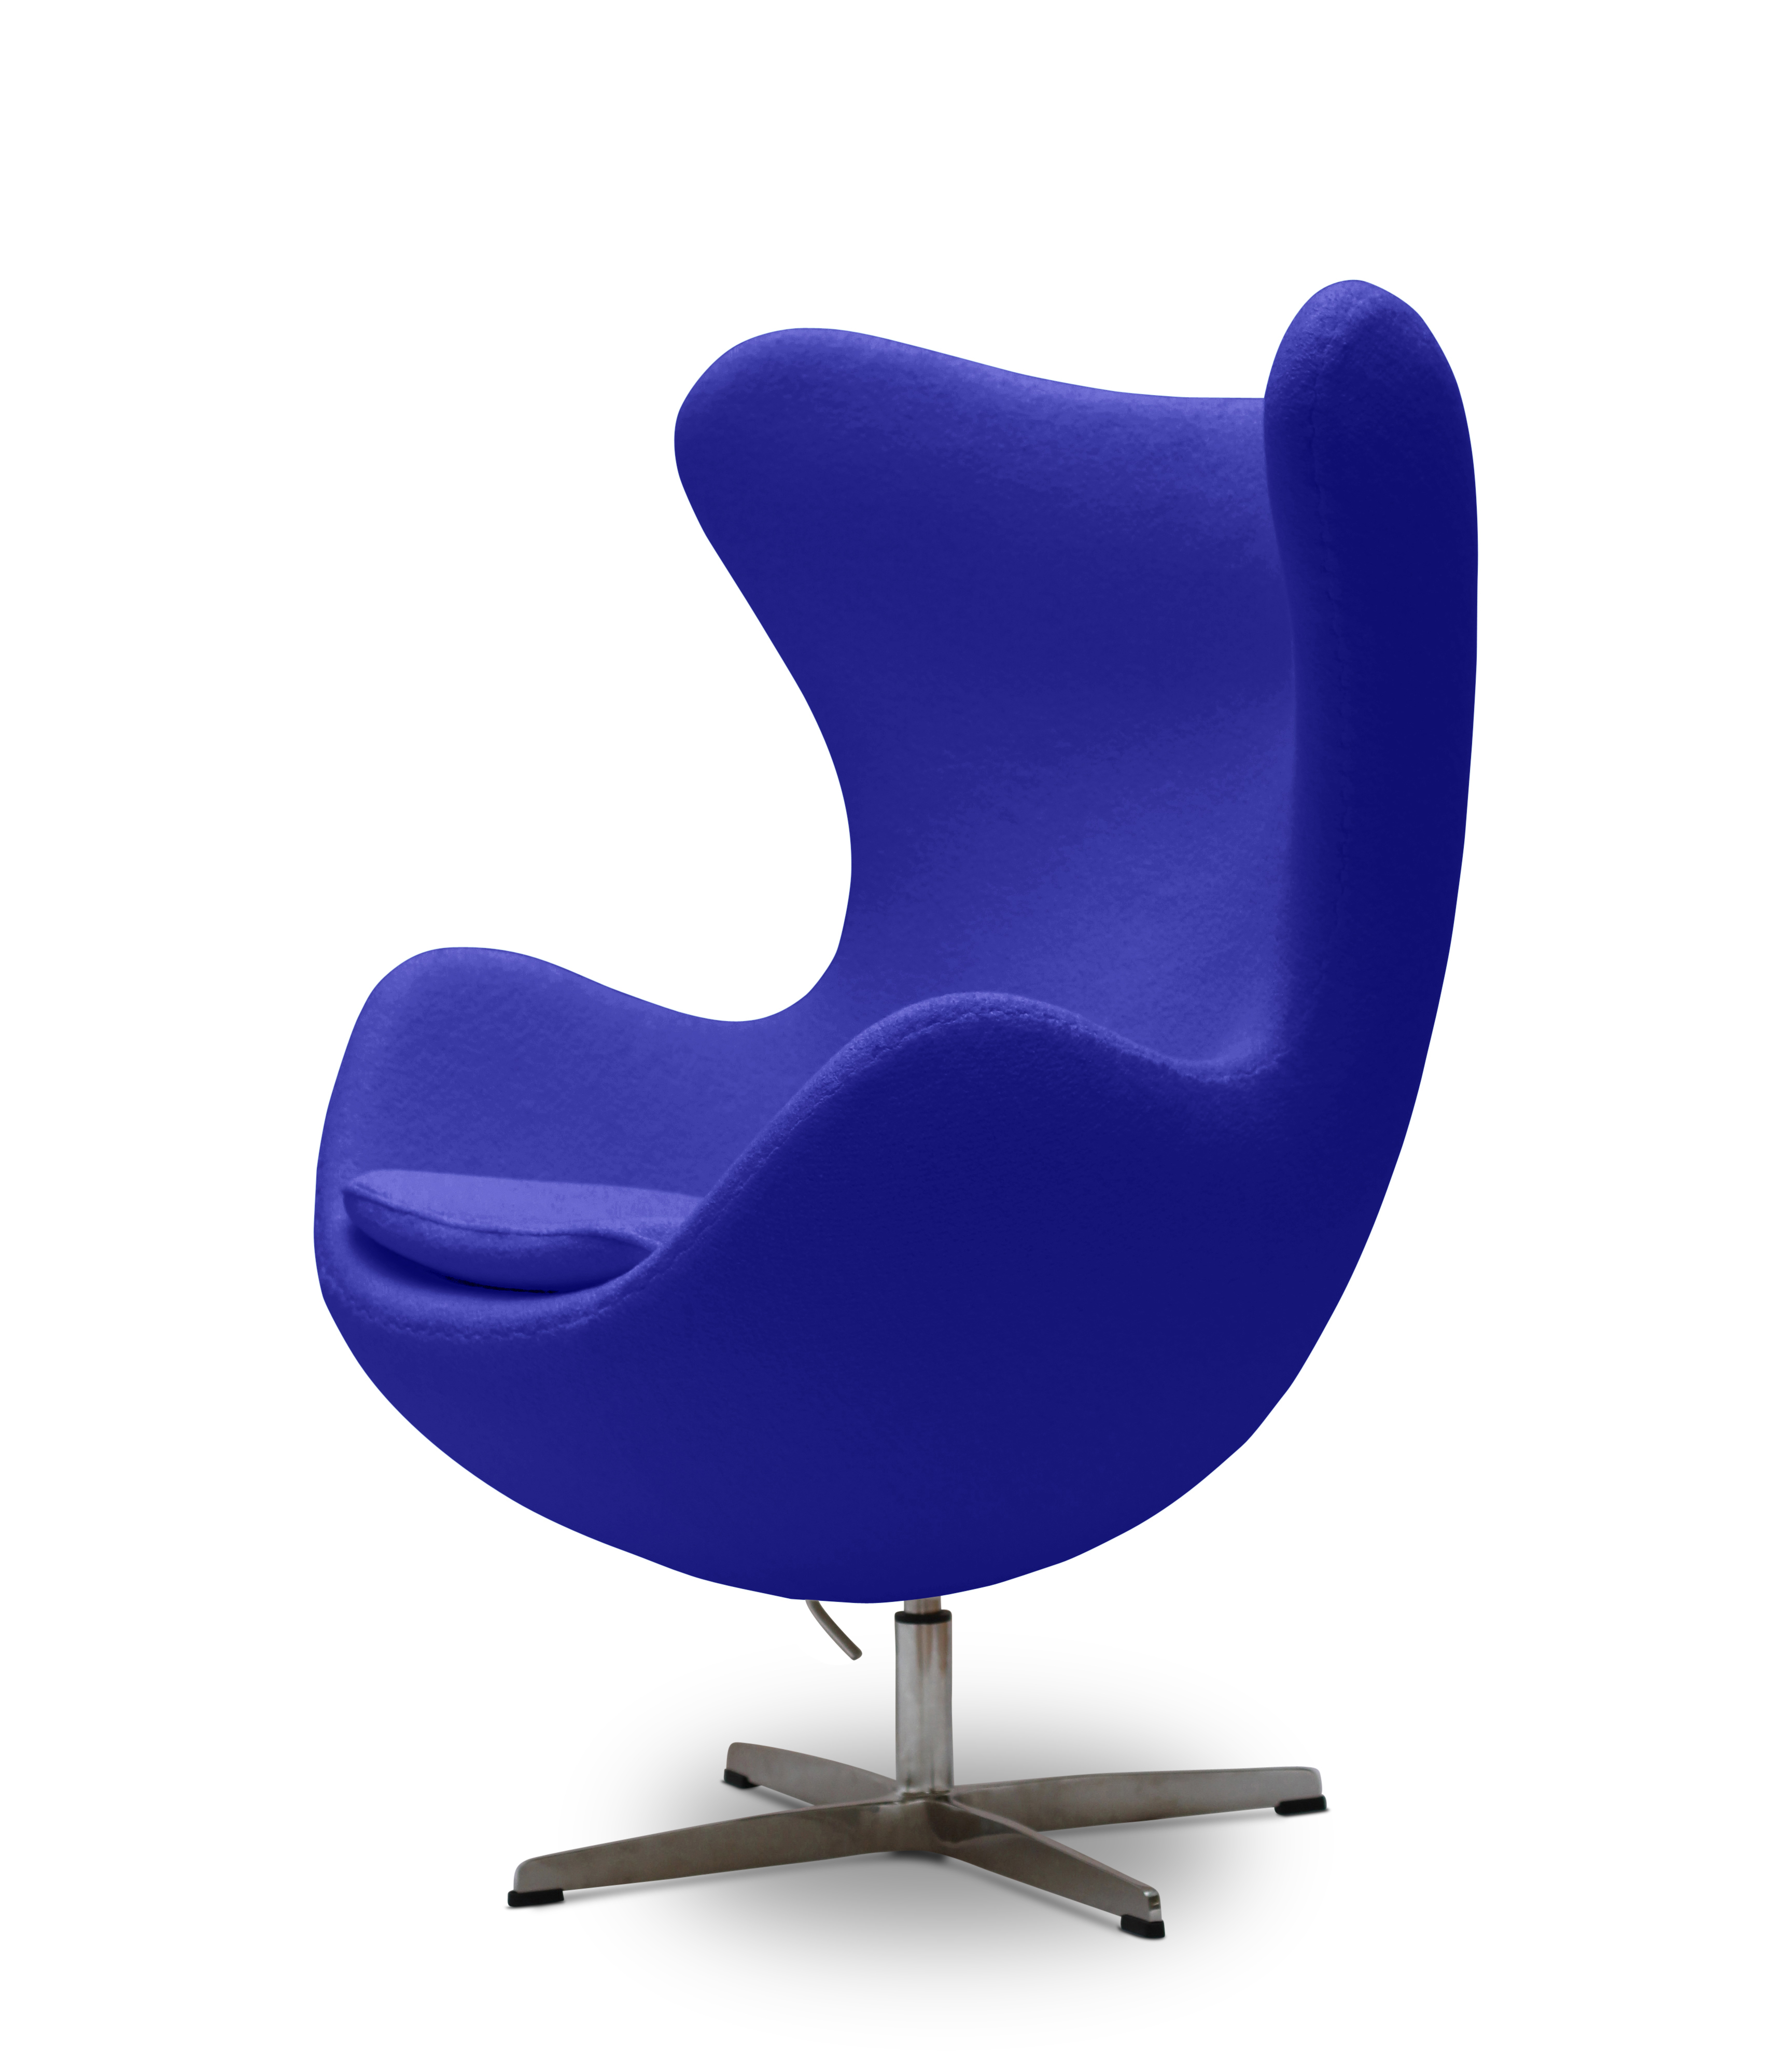 parker with inspiration revived blue knoll chair best pleasing egg design reloved of rl statesman upholstery new